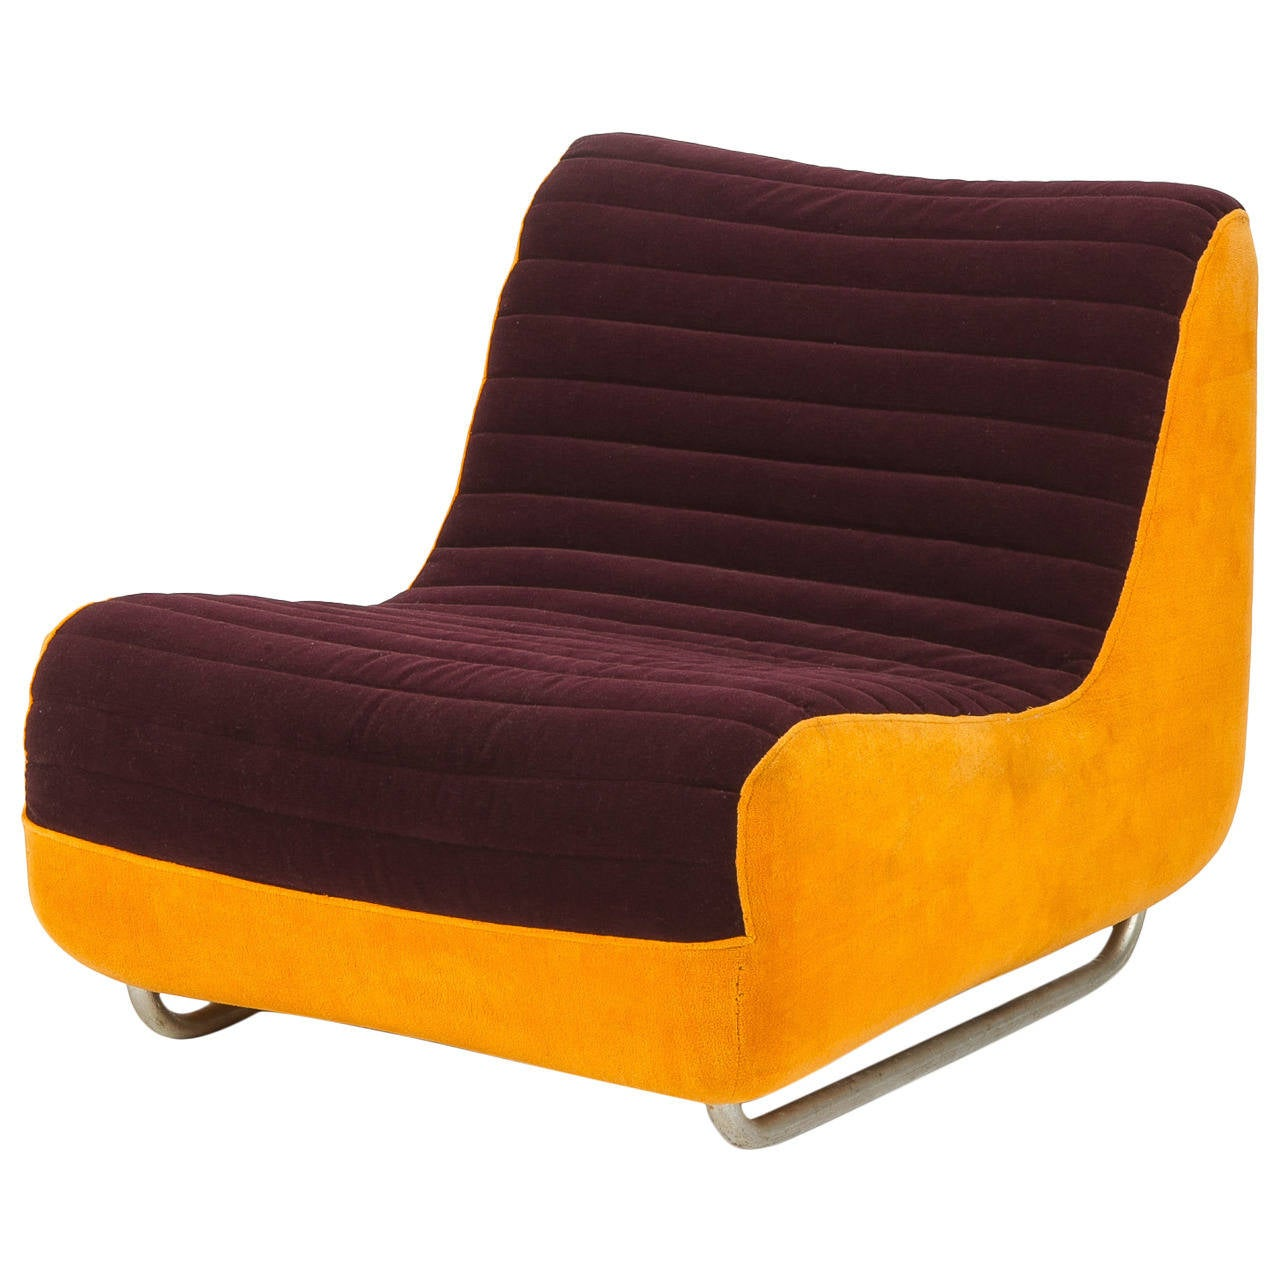 Funky lounge chair f range by rodney kinsman 1970 at 1stdibs for Funky furniture